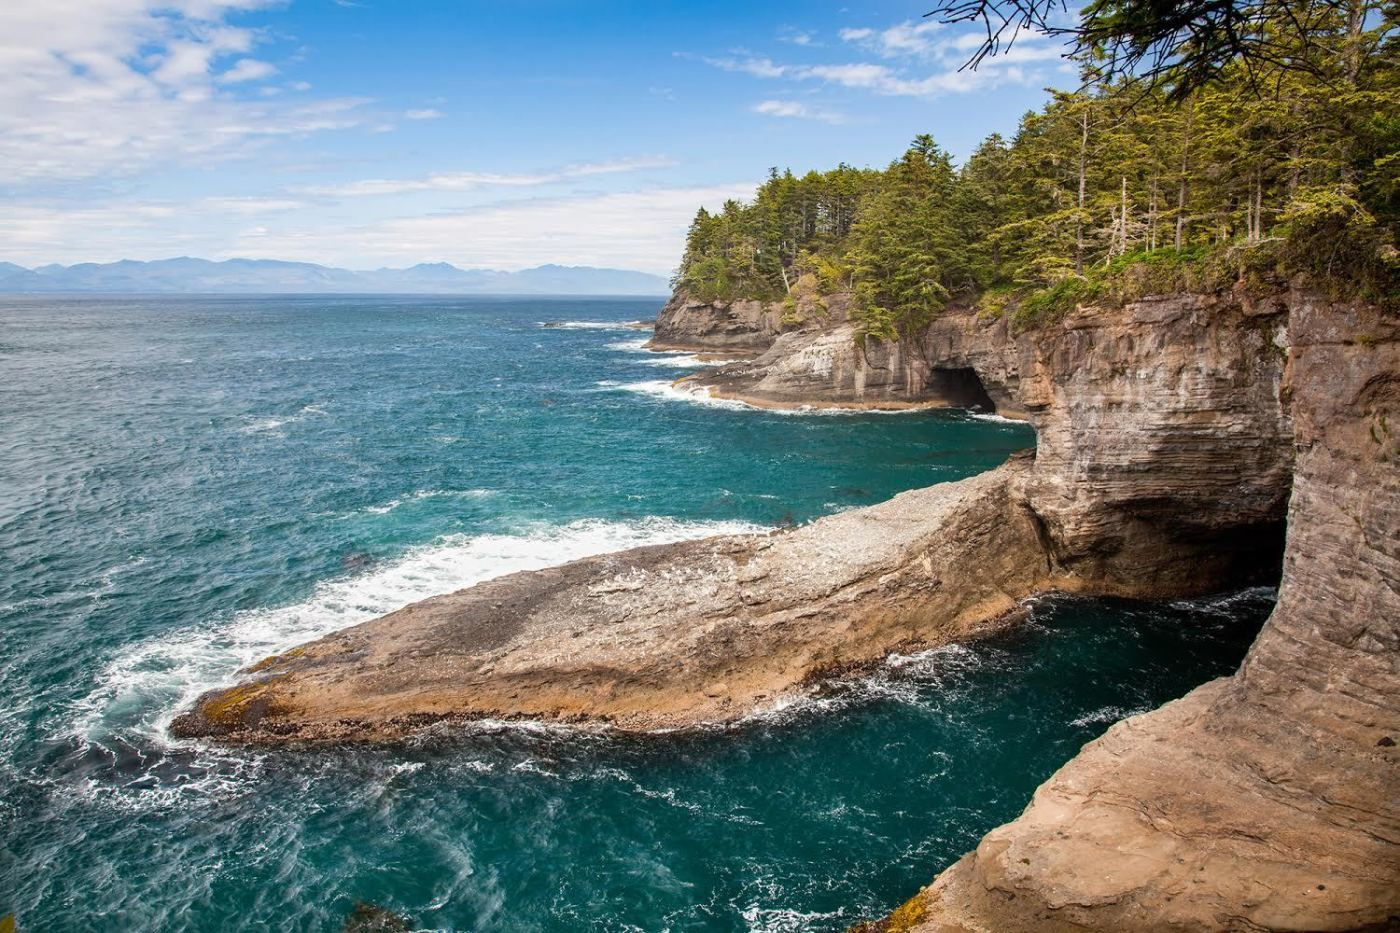 Victory: Washington State Passes Law to Prohibit Seabed Mining